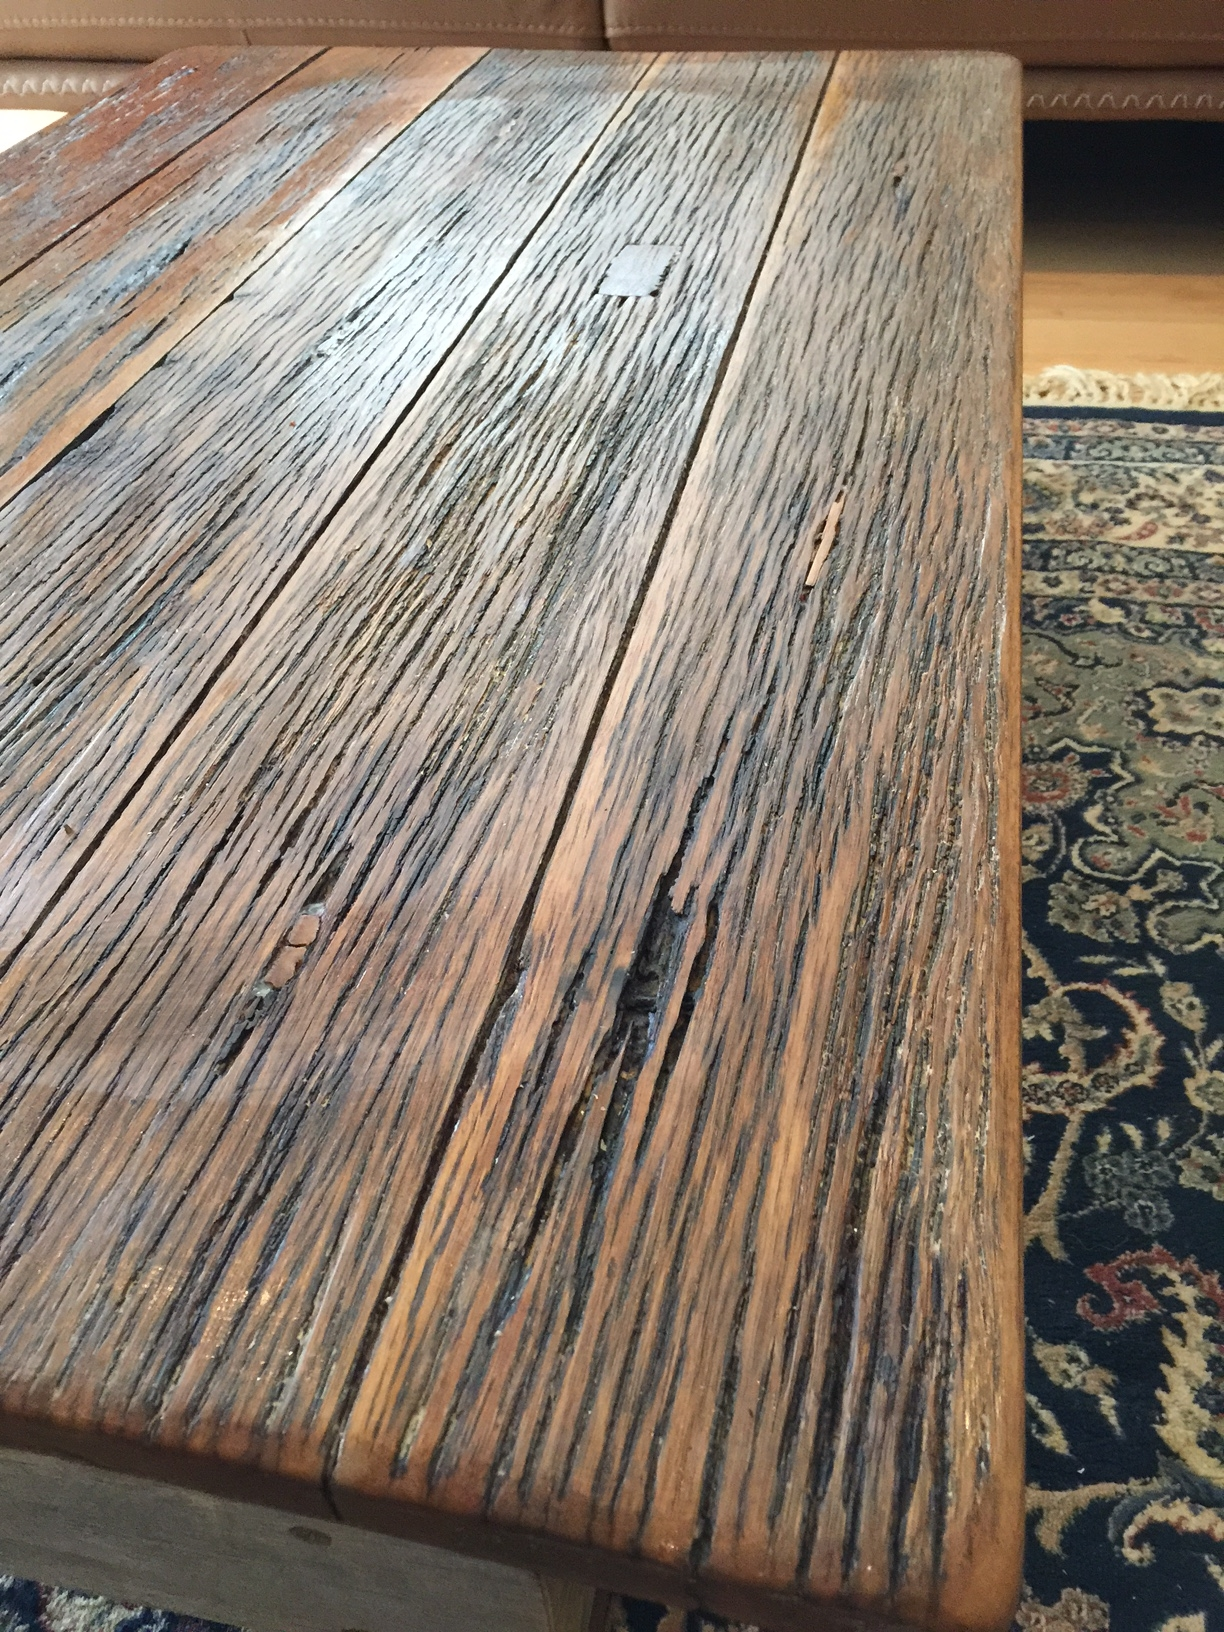 Tables Other Timbers With Veins